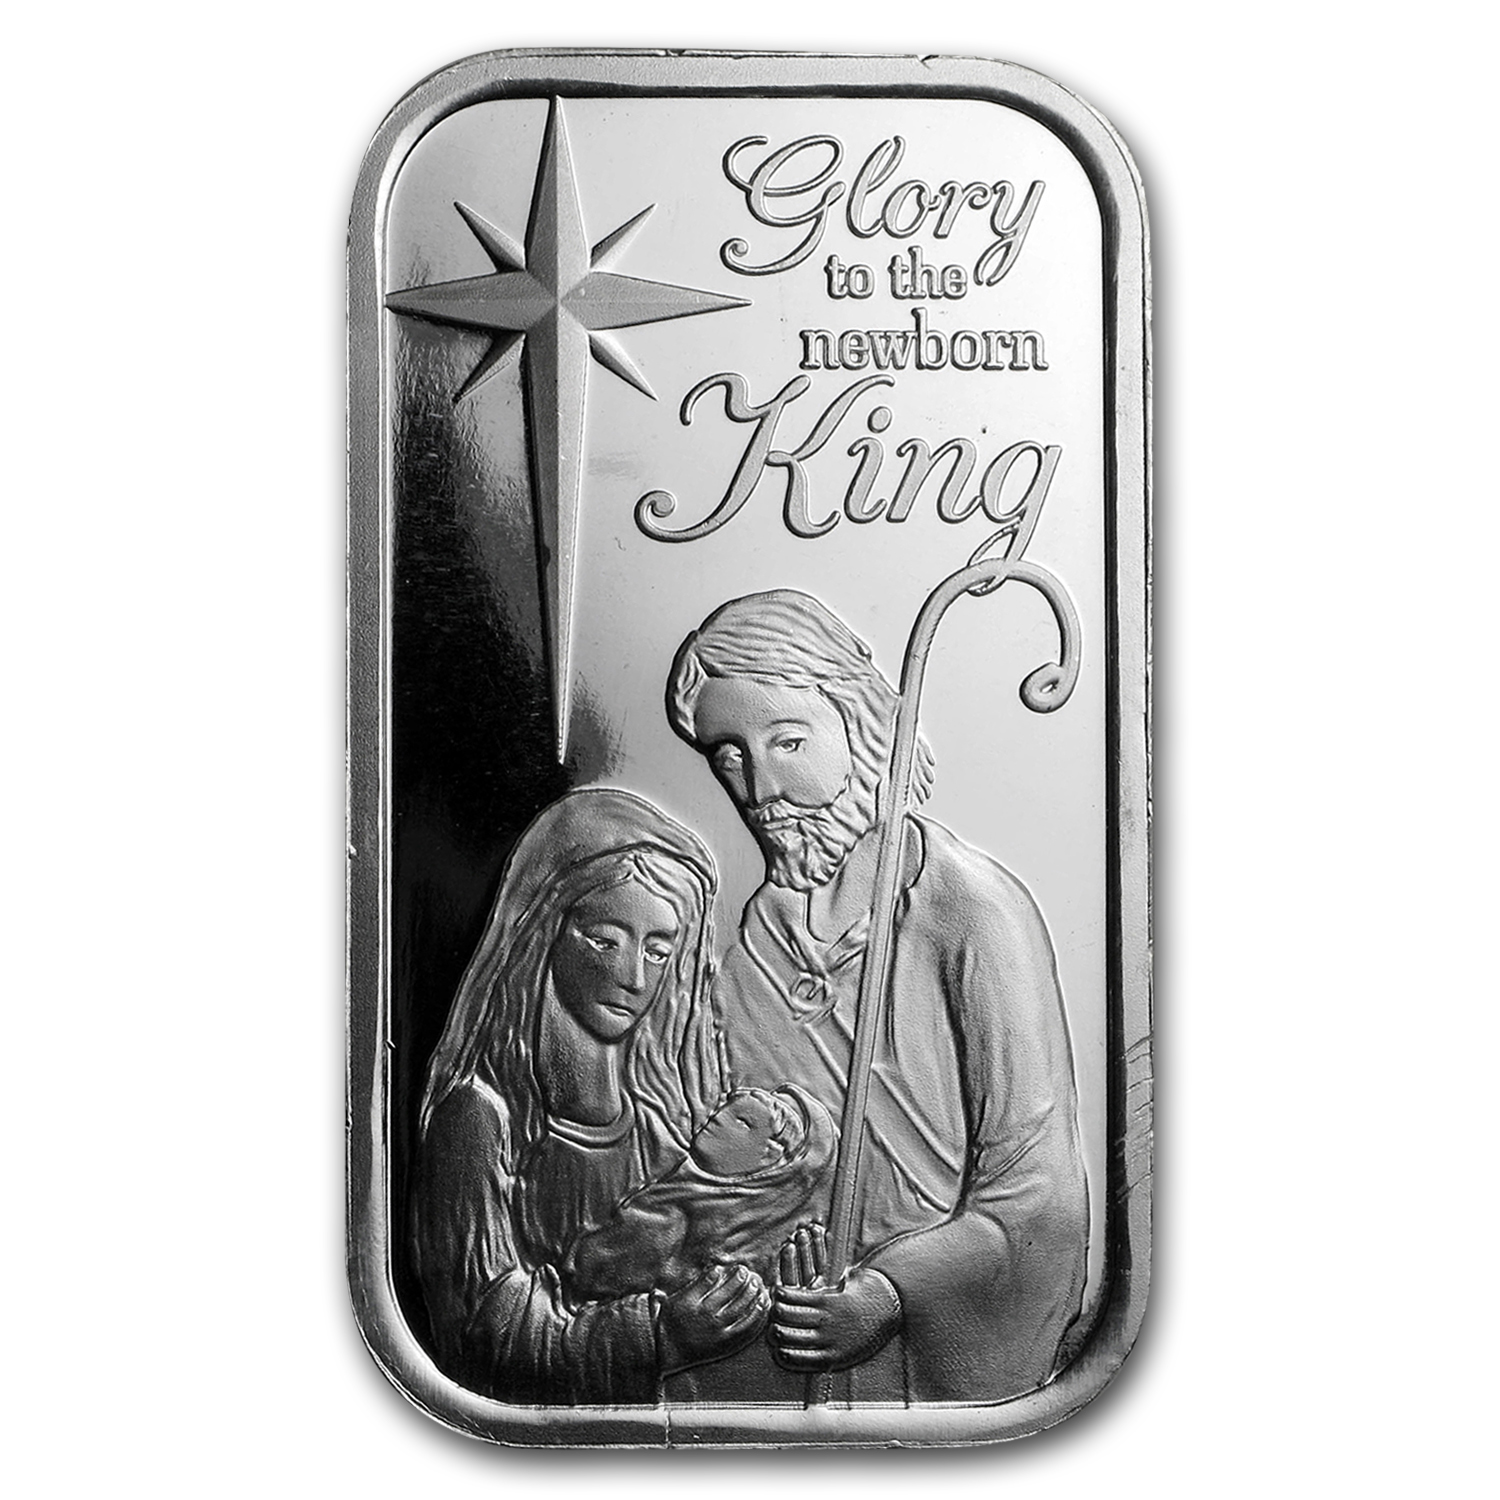 1 oz Silver Bar - 2017 Glory To The Newborn King